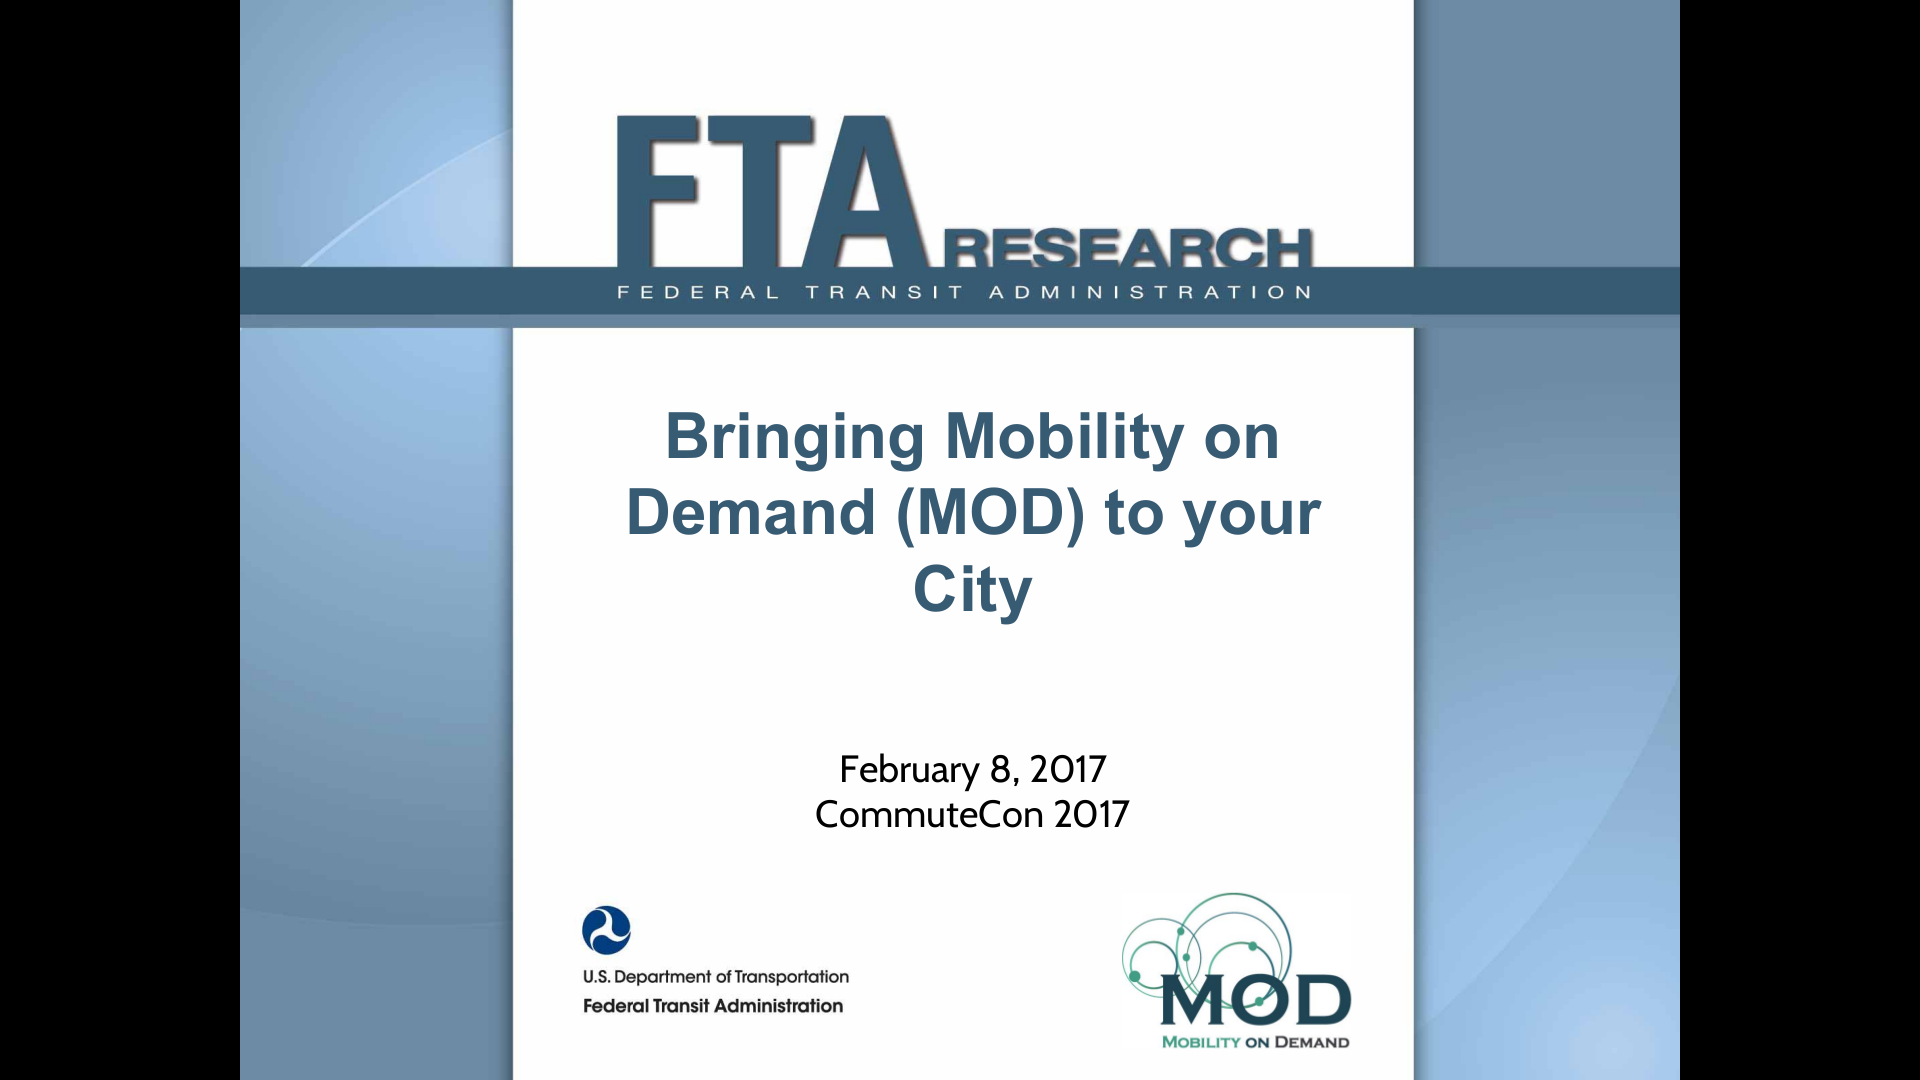 Bringing Mobility on Demand to your City | CommuteCon 2017